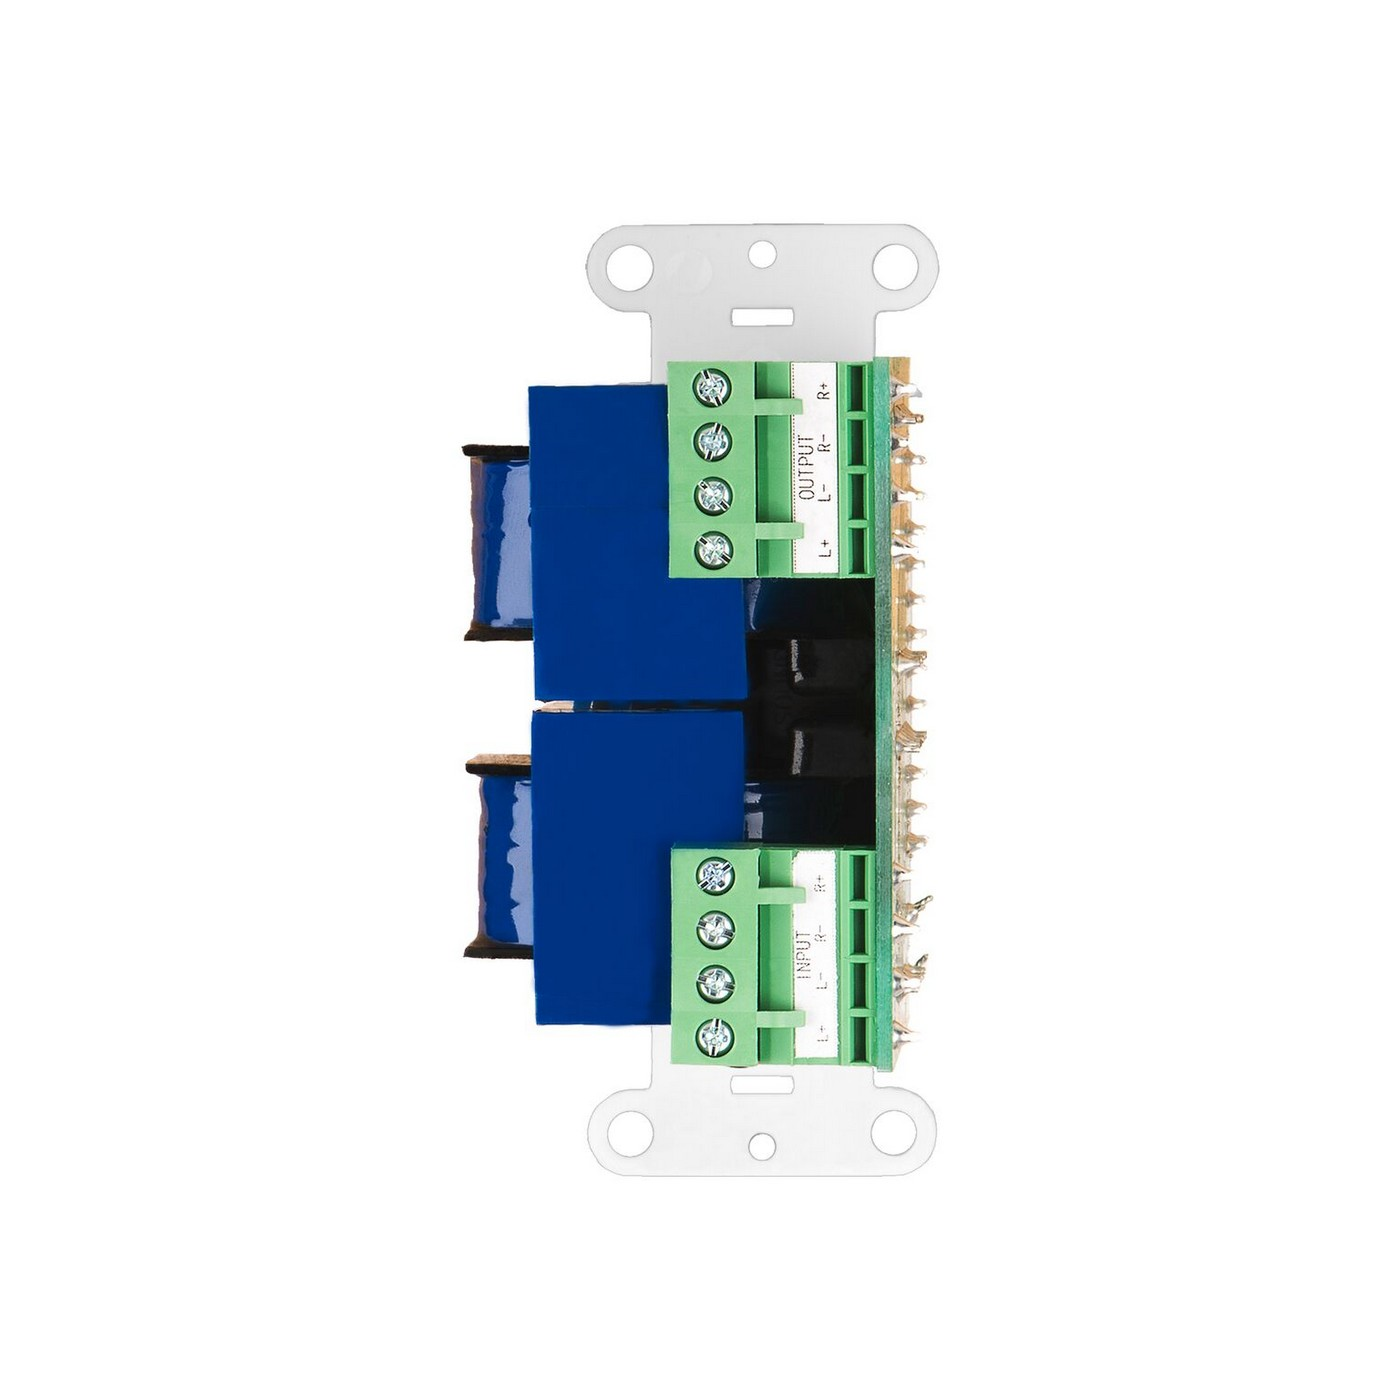 SVC205 In-Wall Impedance Matching Volume Control with On/Off